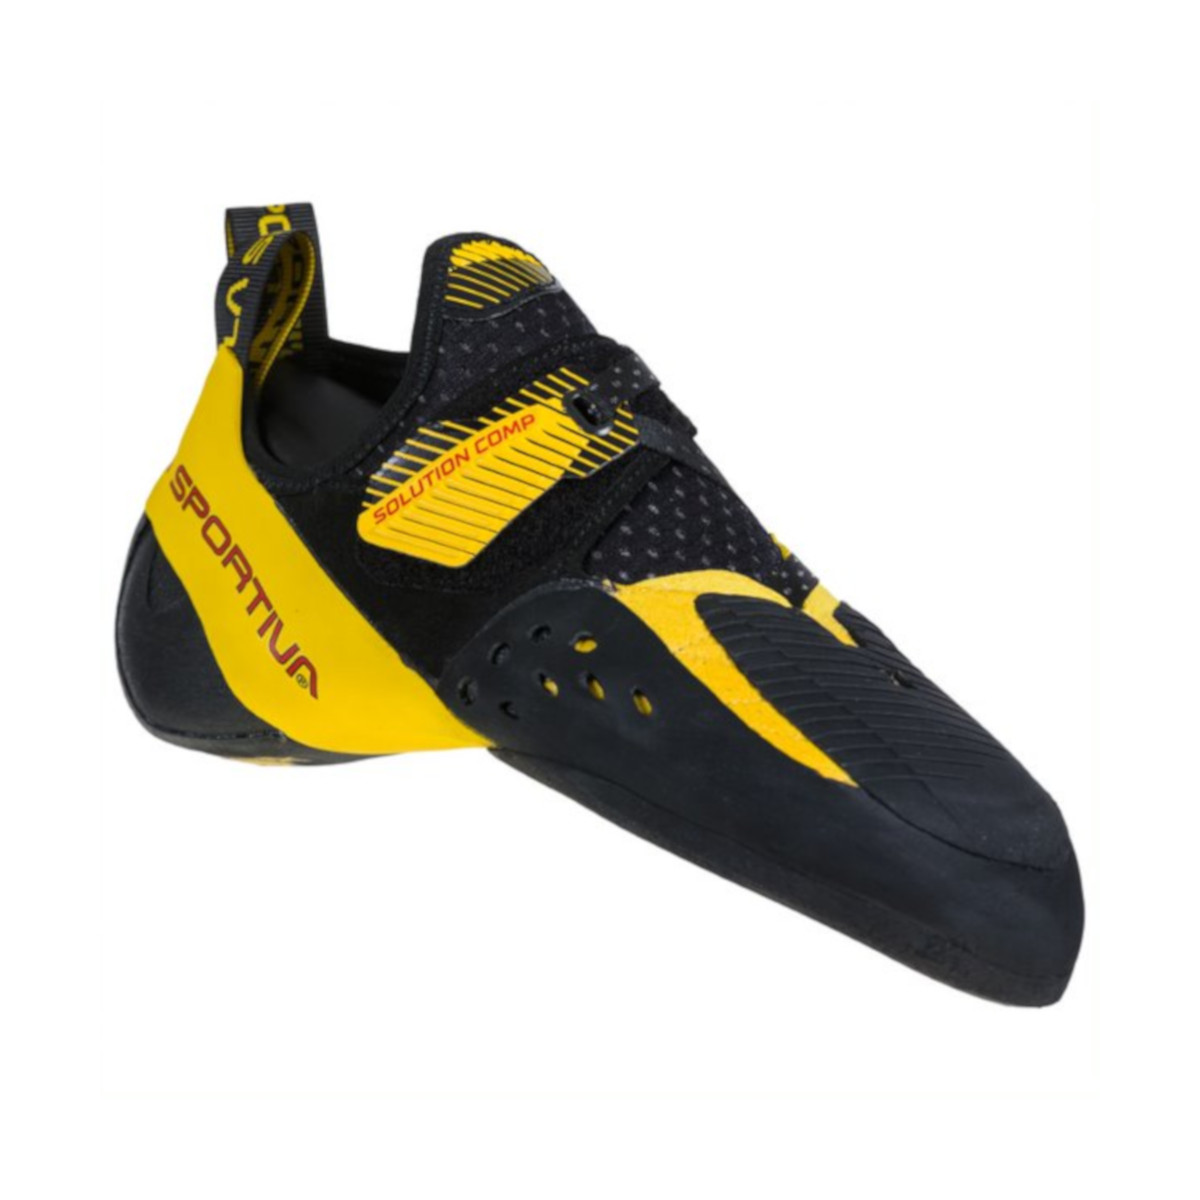 La Sportiva Solution Comp Climbing Shoe Women/'s